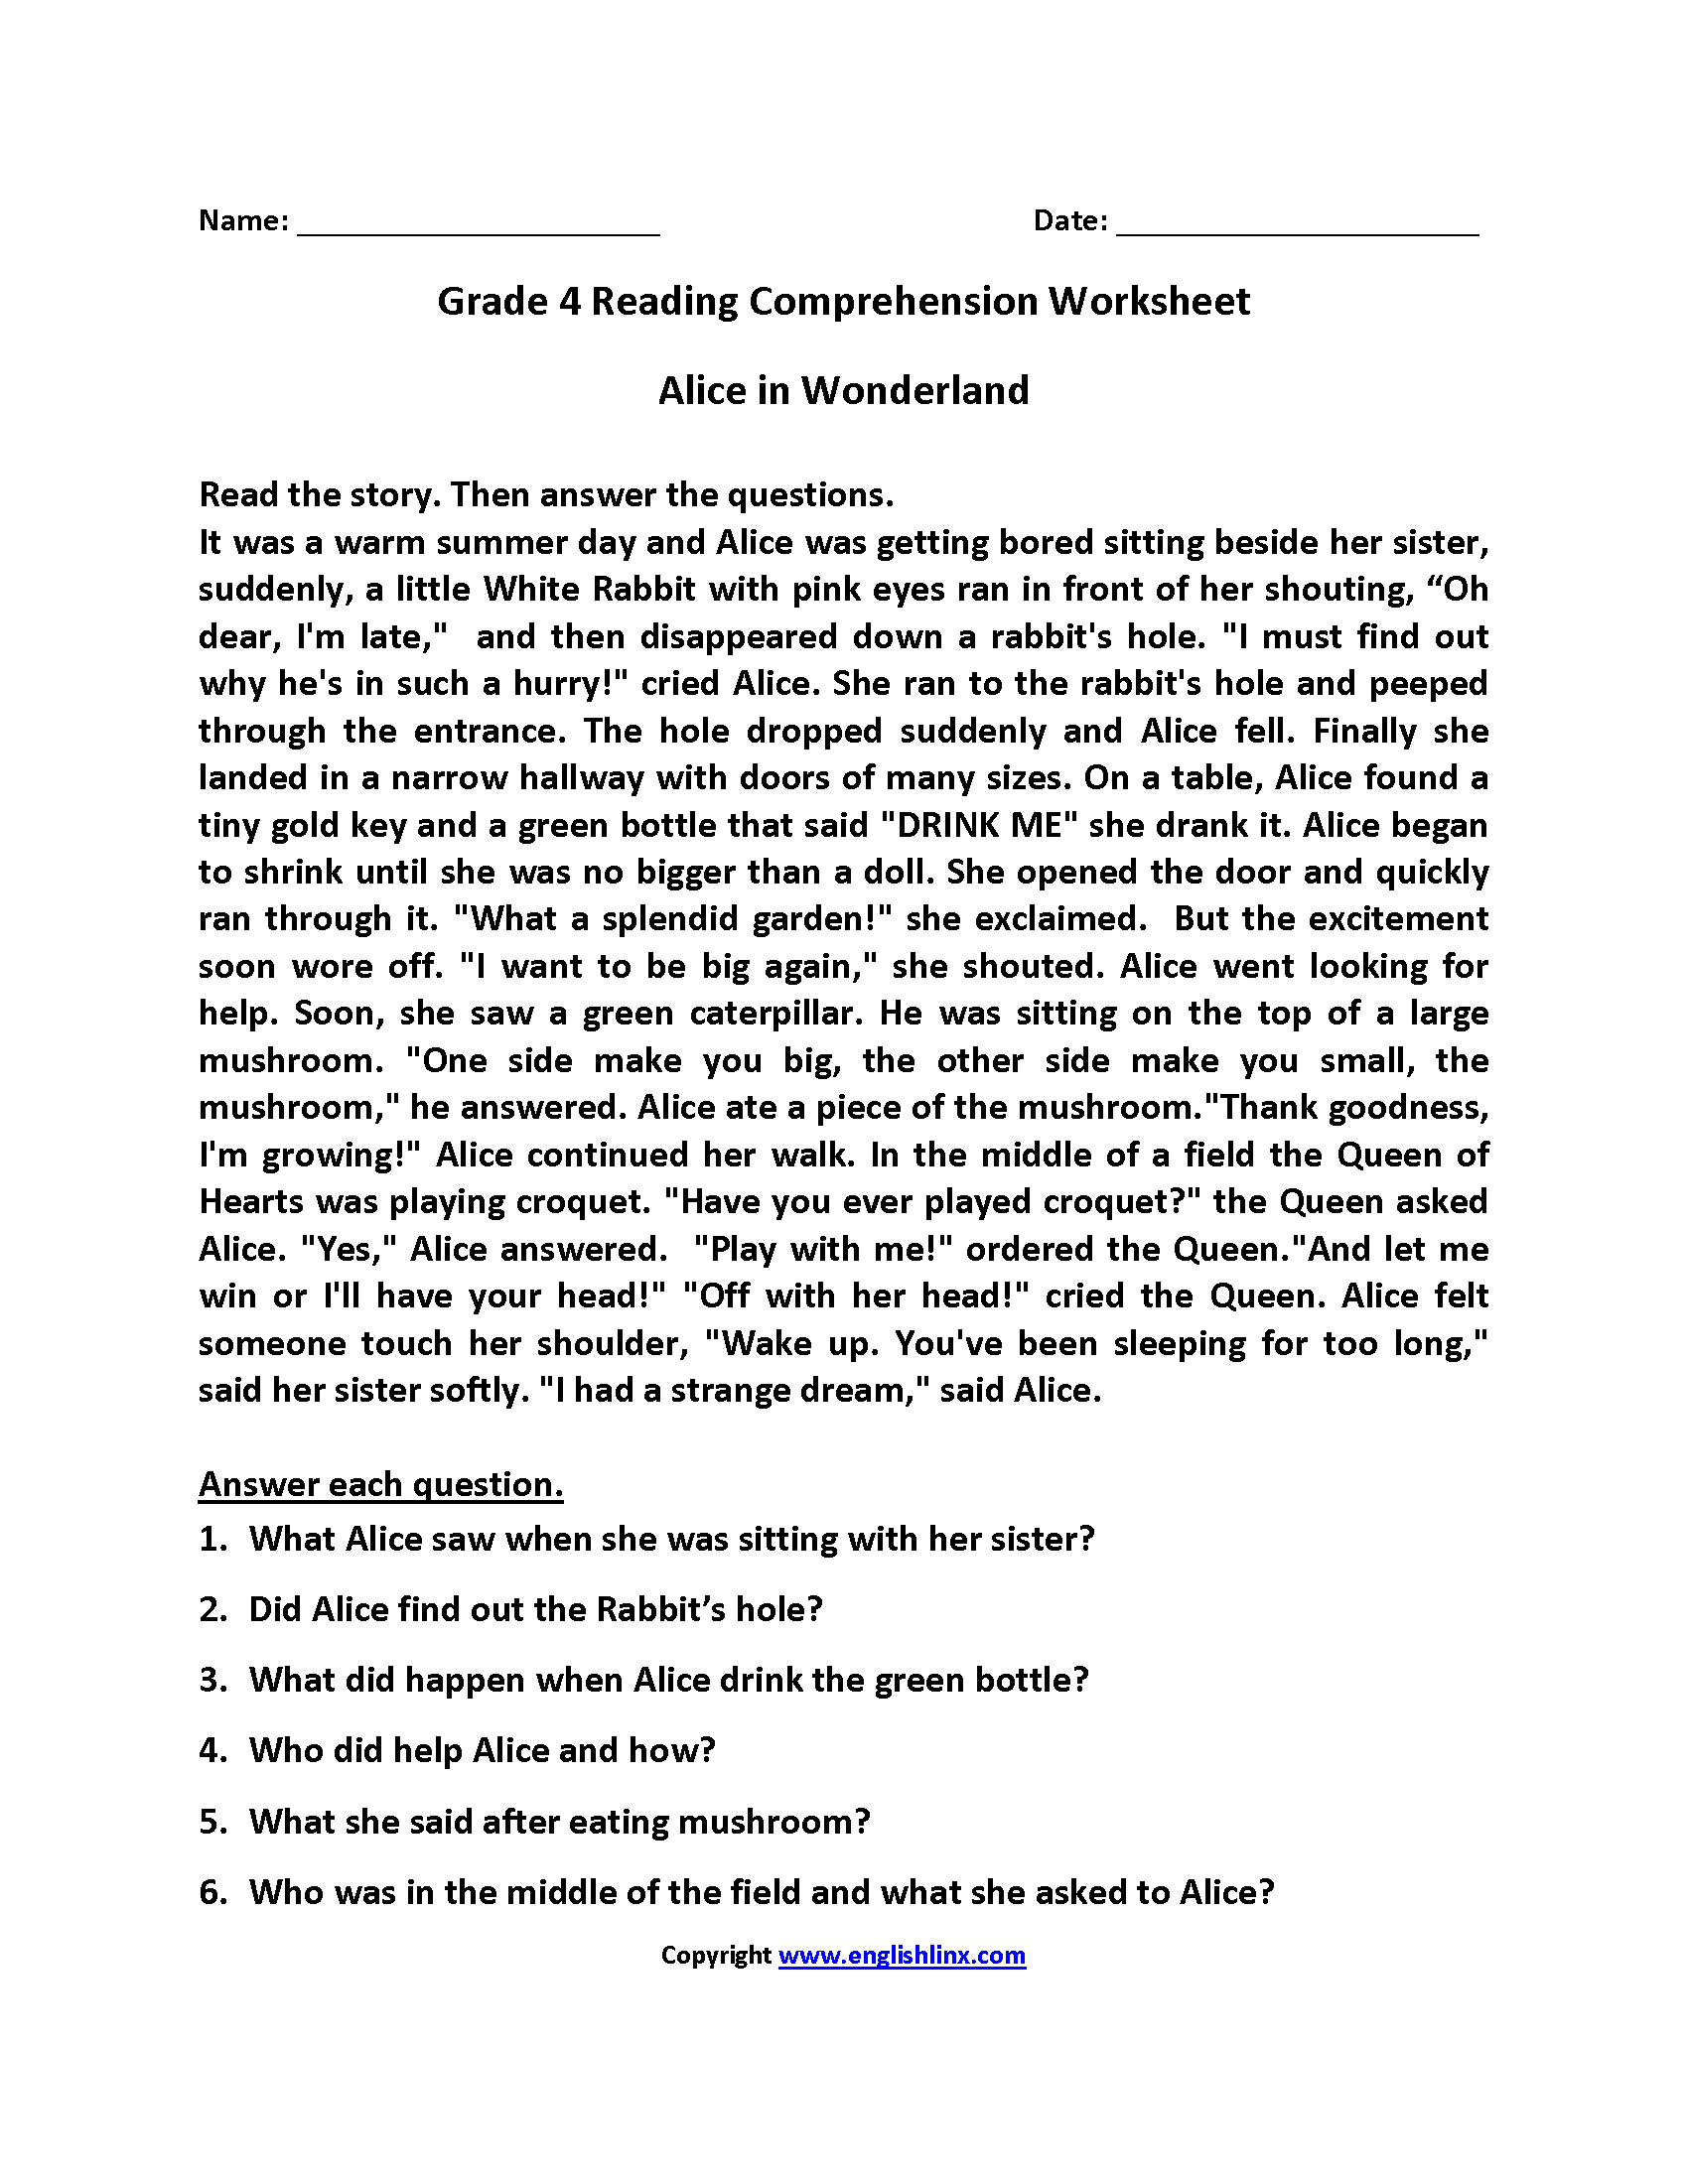 Comprehension Worksheets for Grade 6 4th Grade Reading Prehension Worksheets Thanksgiving